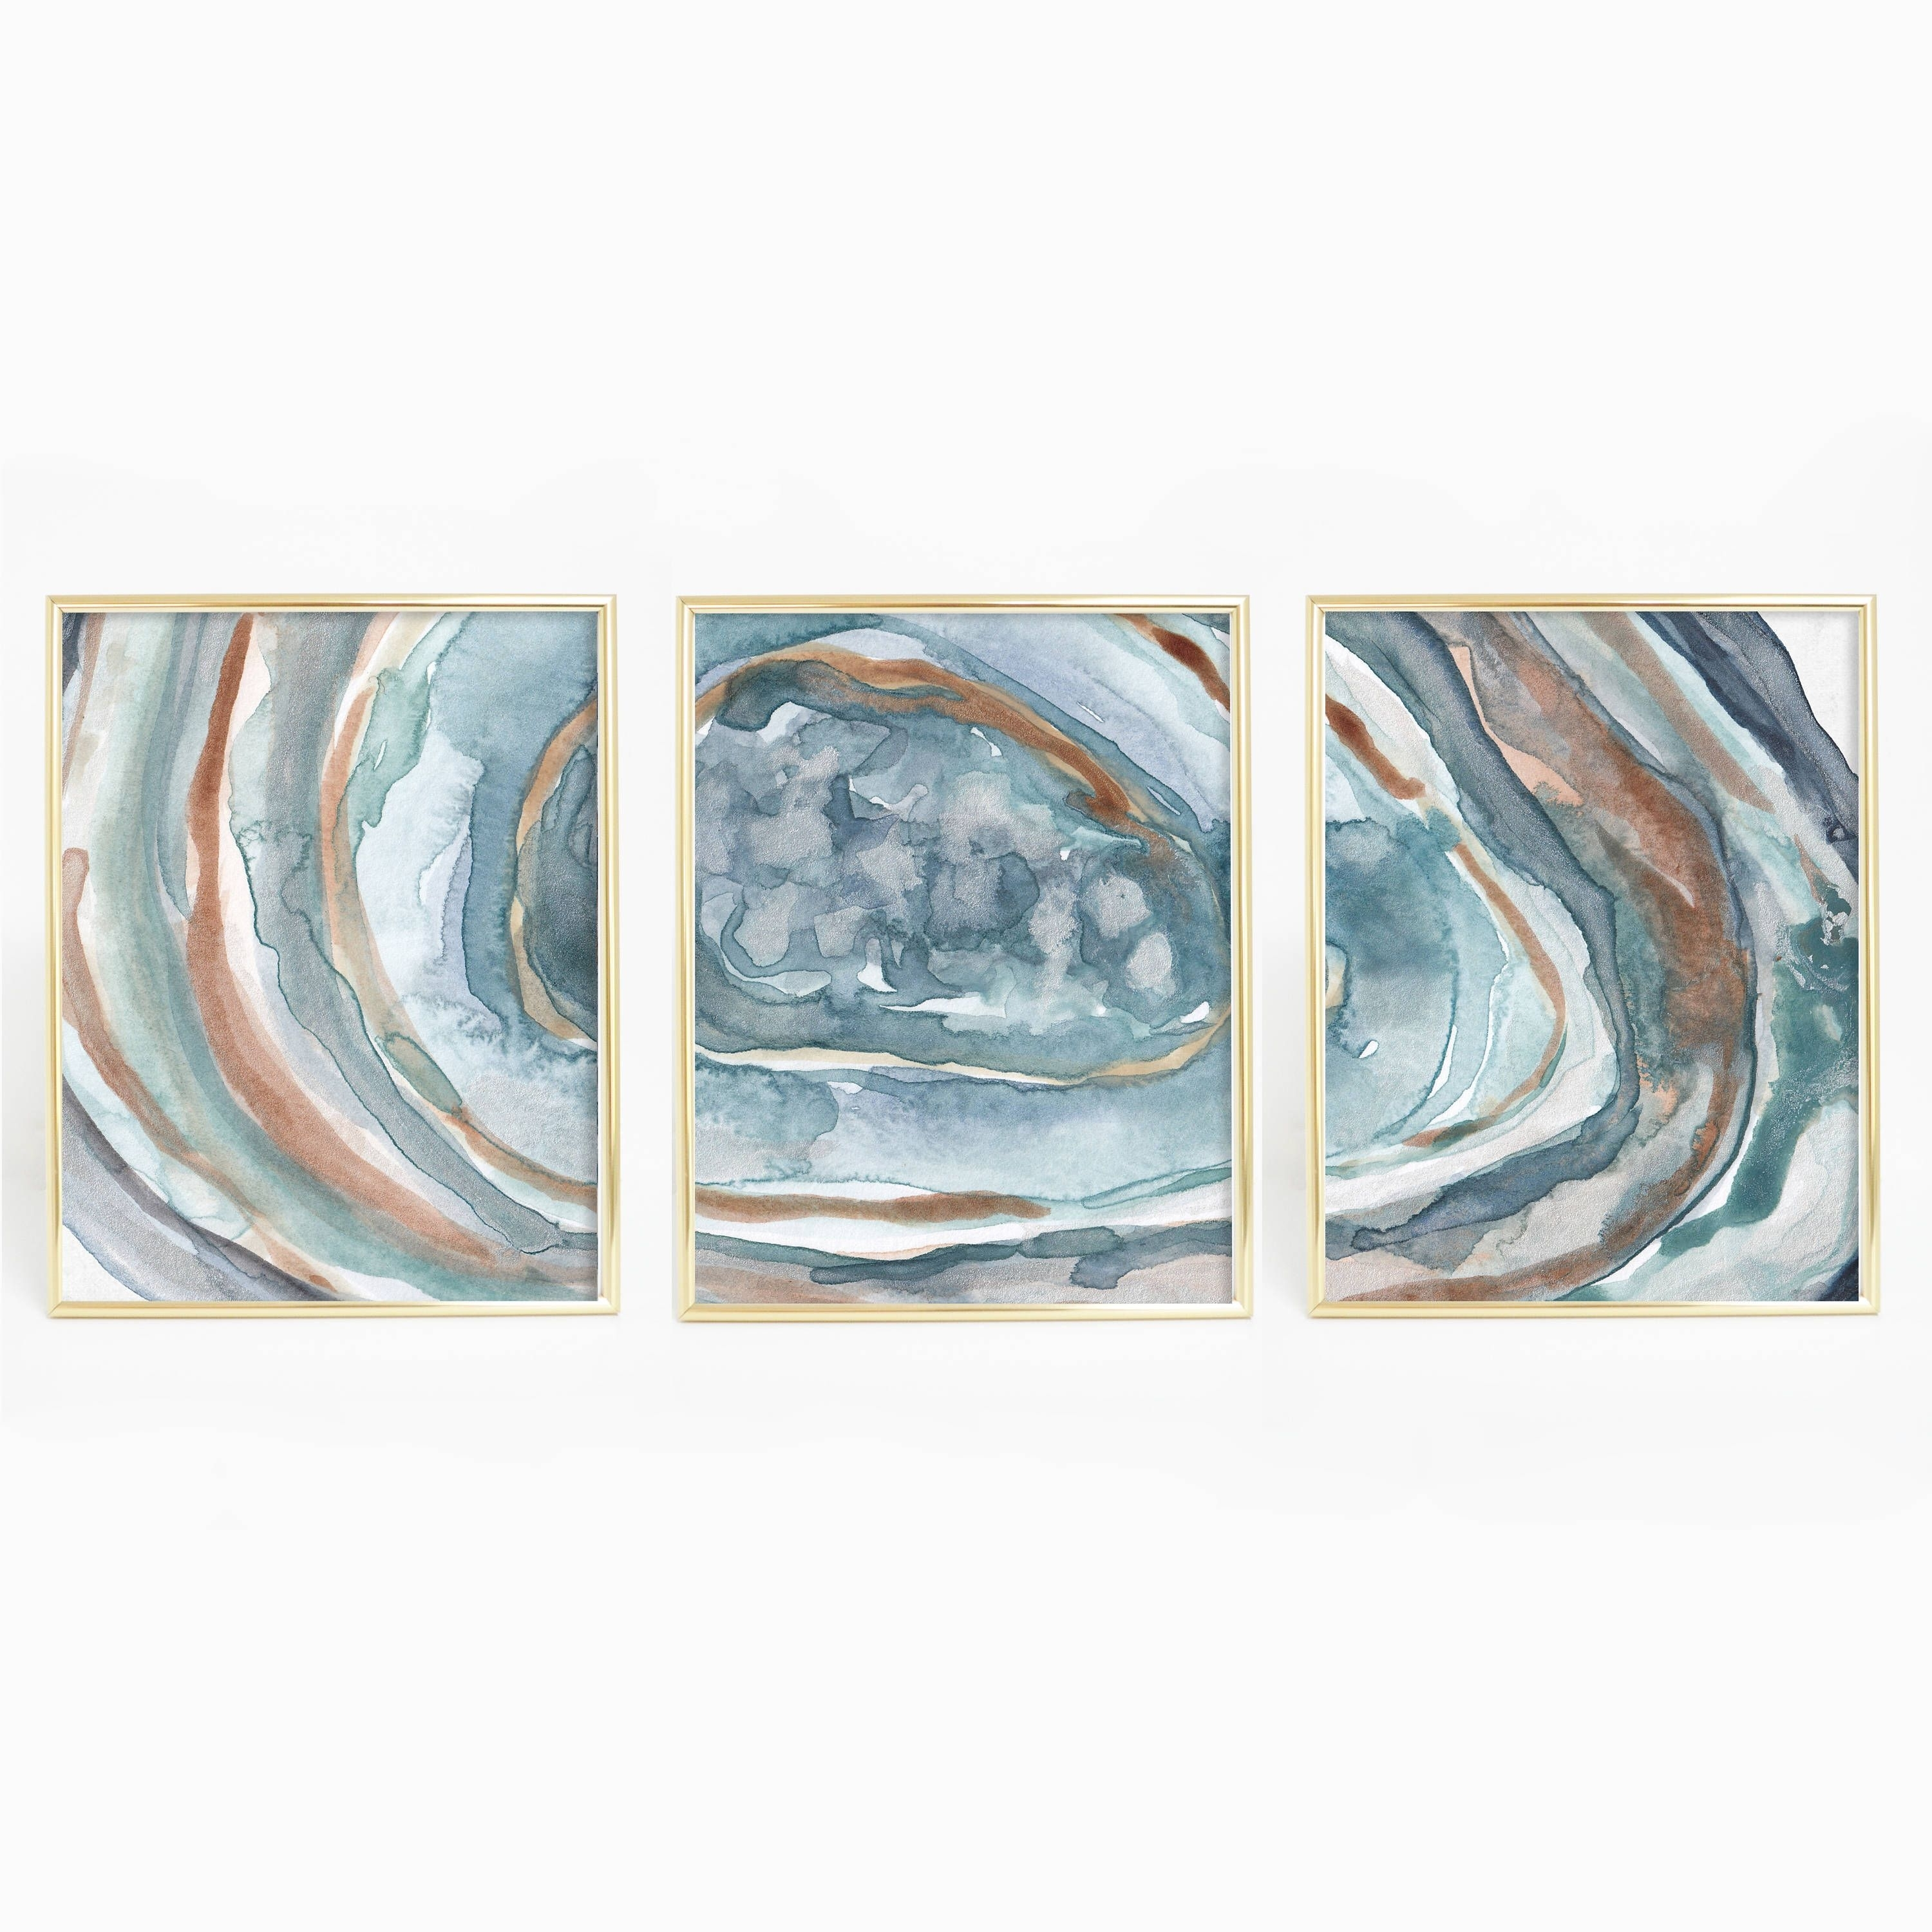 Turquoise Agate Print, Crystal Wall Art, Geode Painting, Watercolor For Most Up To Date Turquoise Wall Art (View 9 of 20)